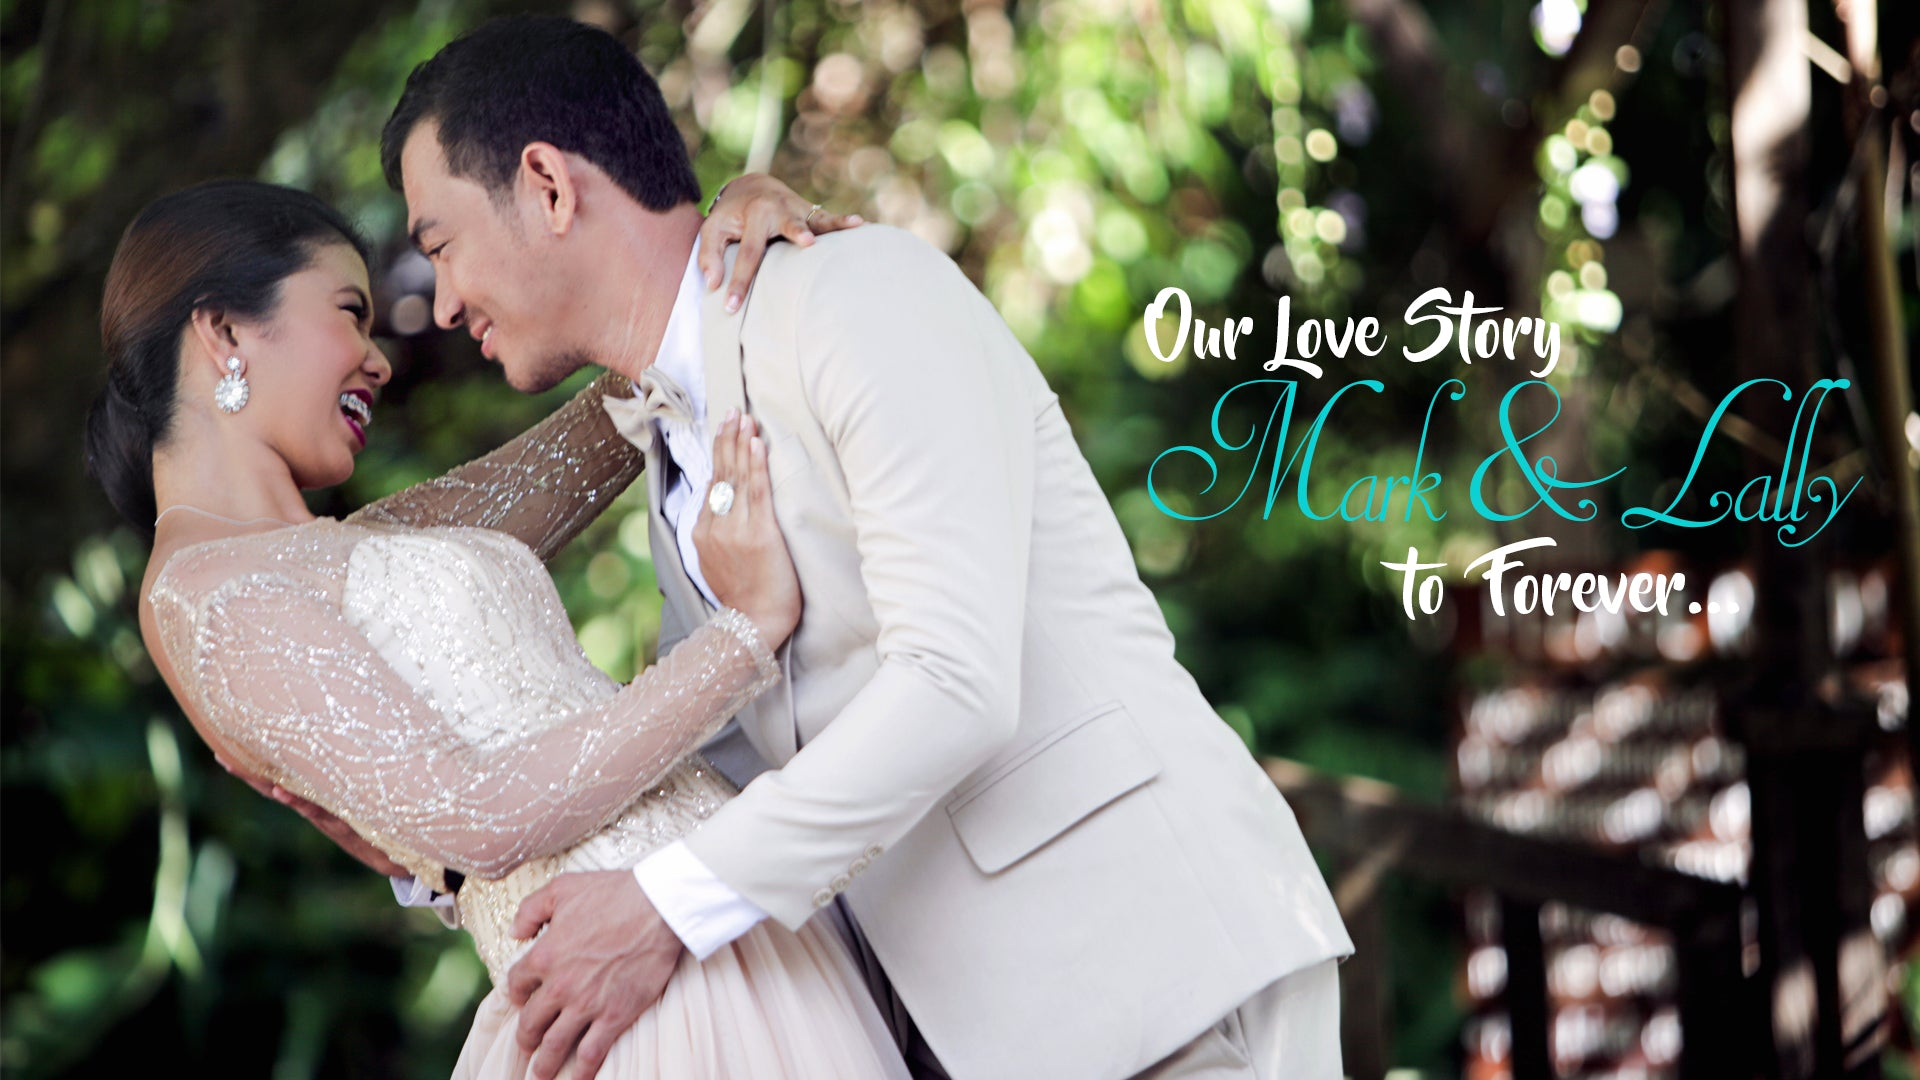 Mark & Lally | Love Story AVP